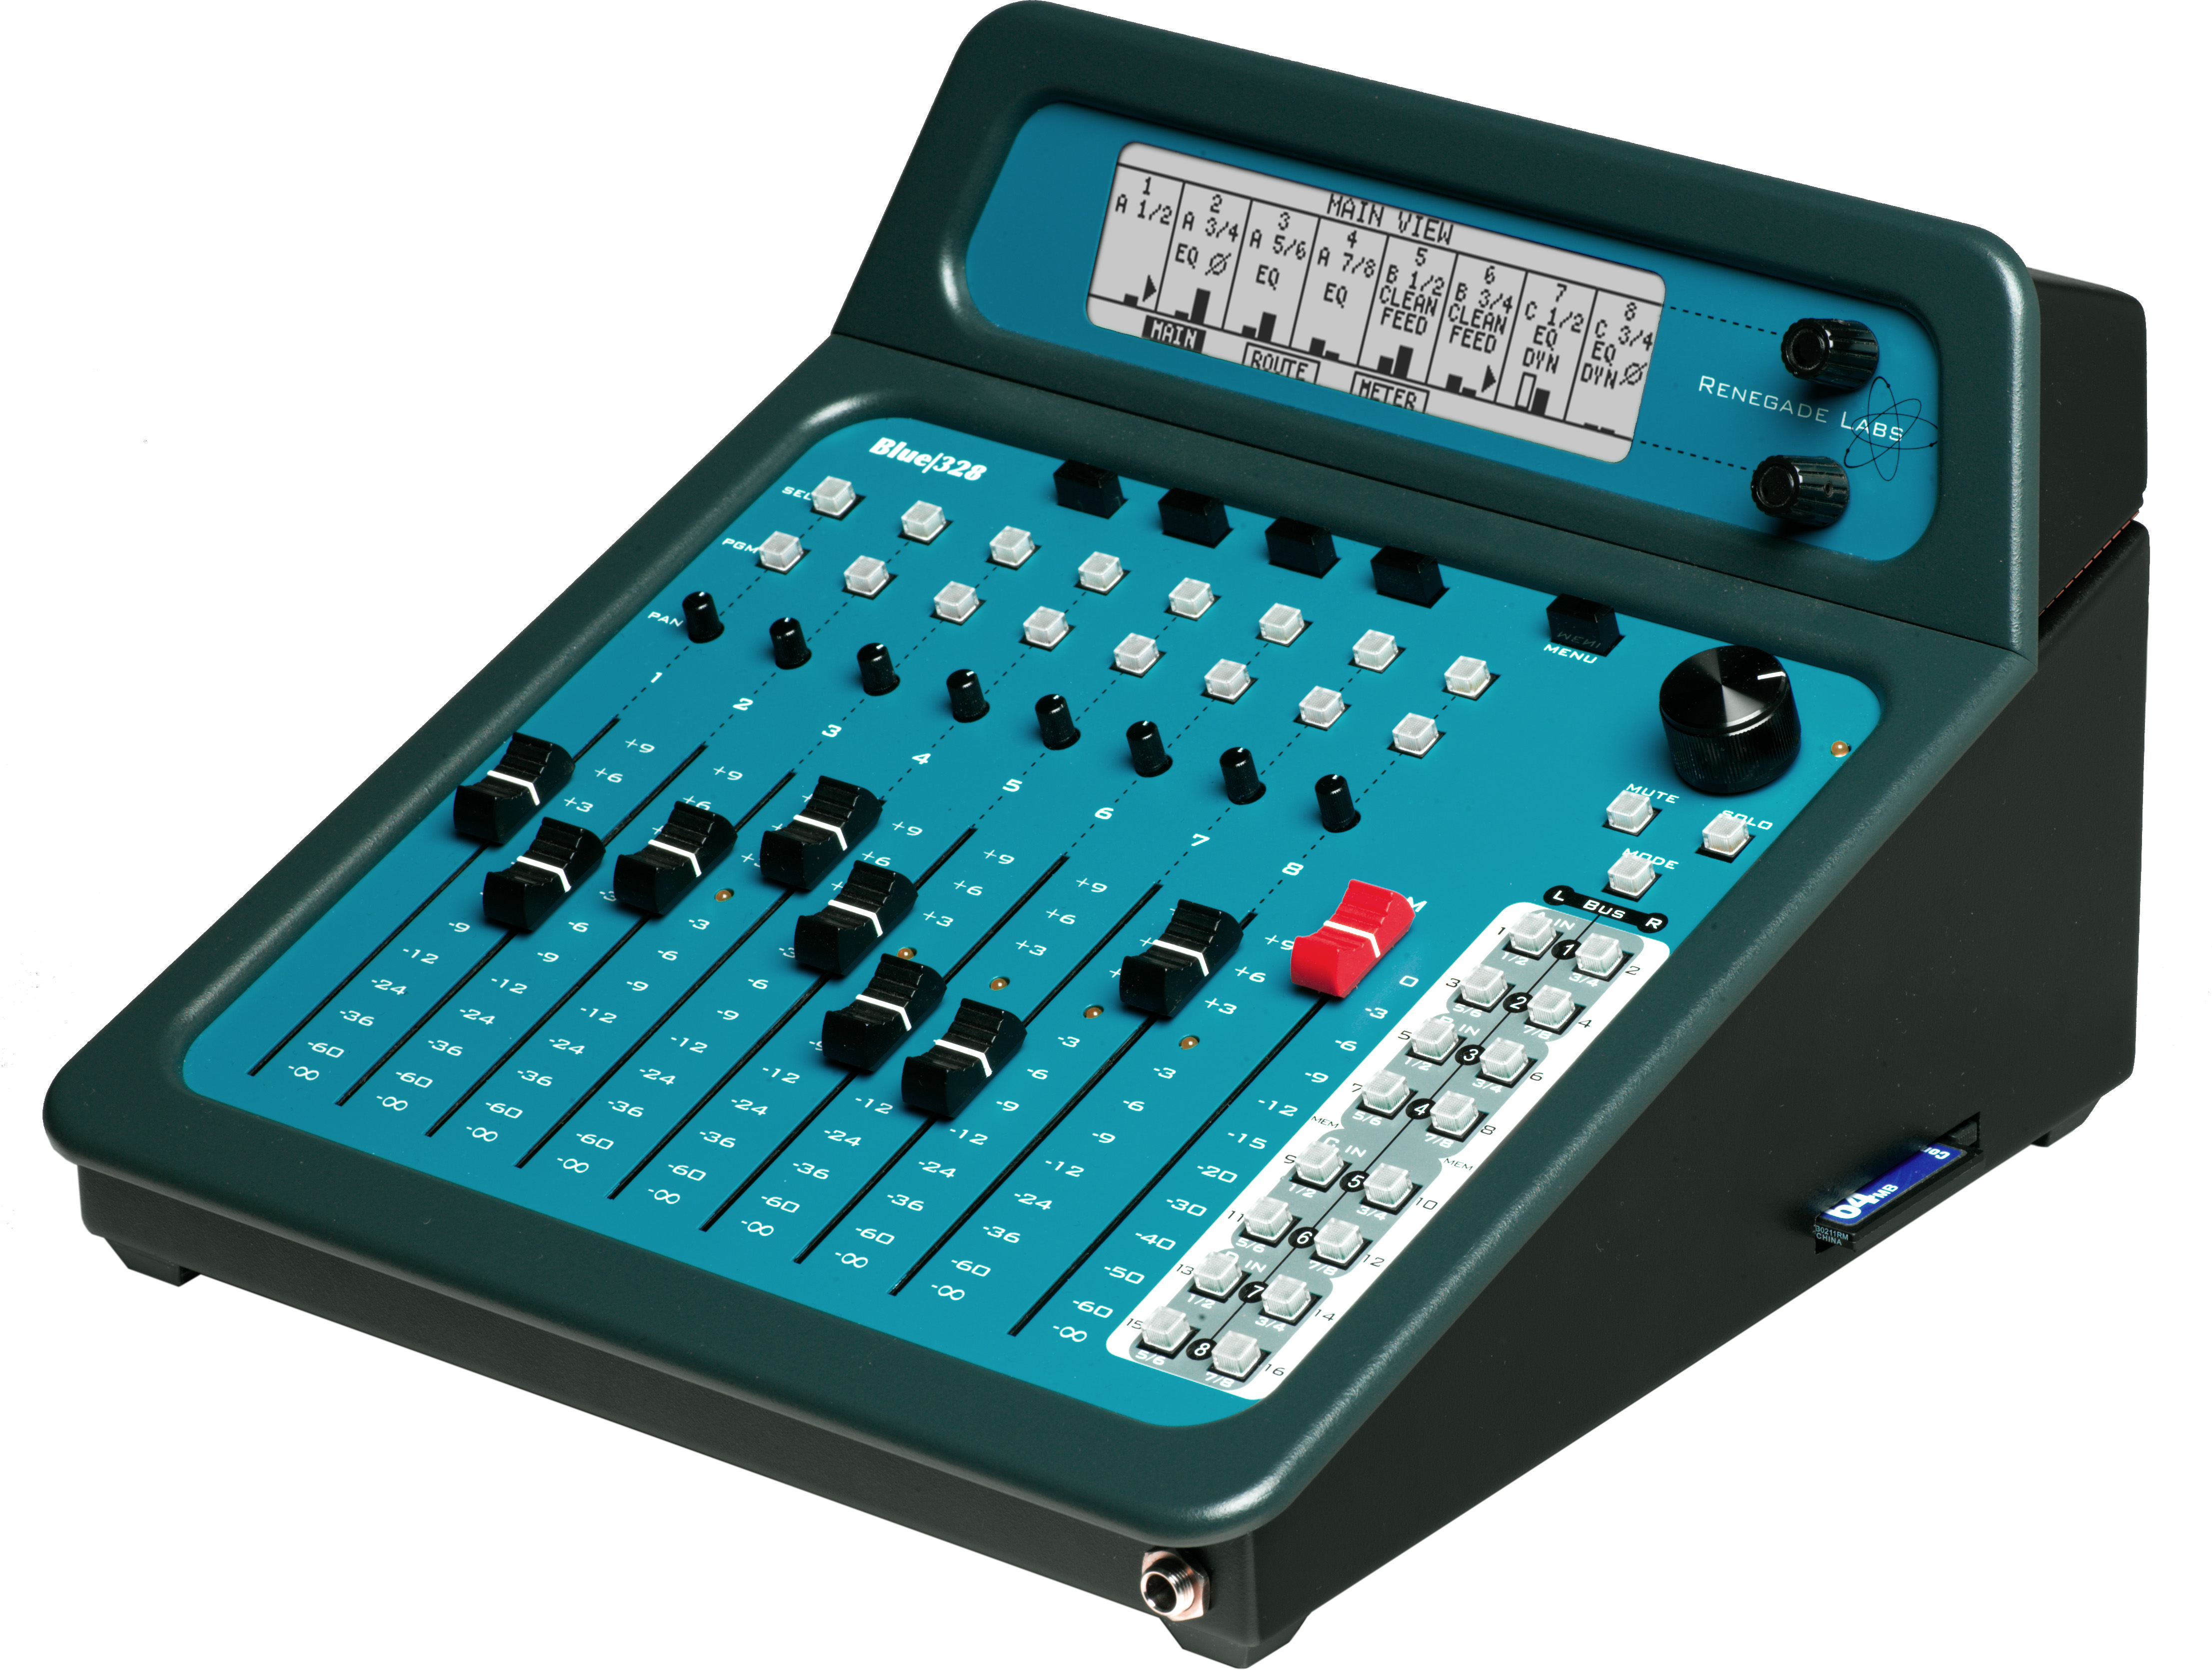 renegade labs unleashes blue 328 digital audio mixer. Black Bedroom Furniture Sets. Home Design Ideas